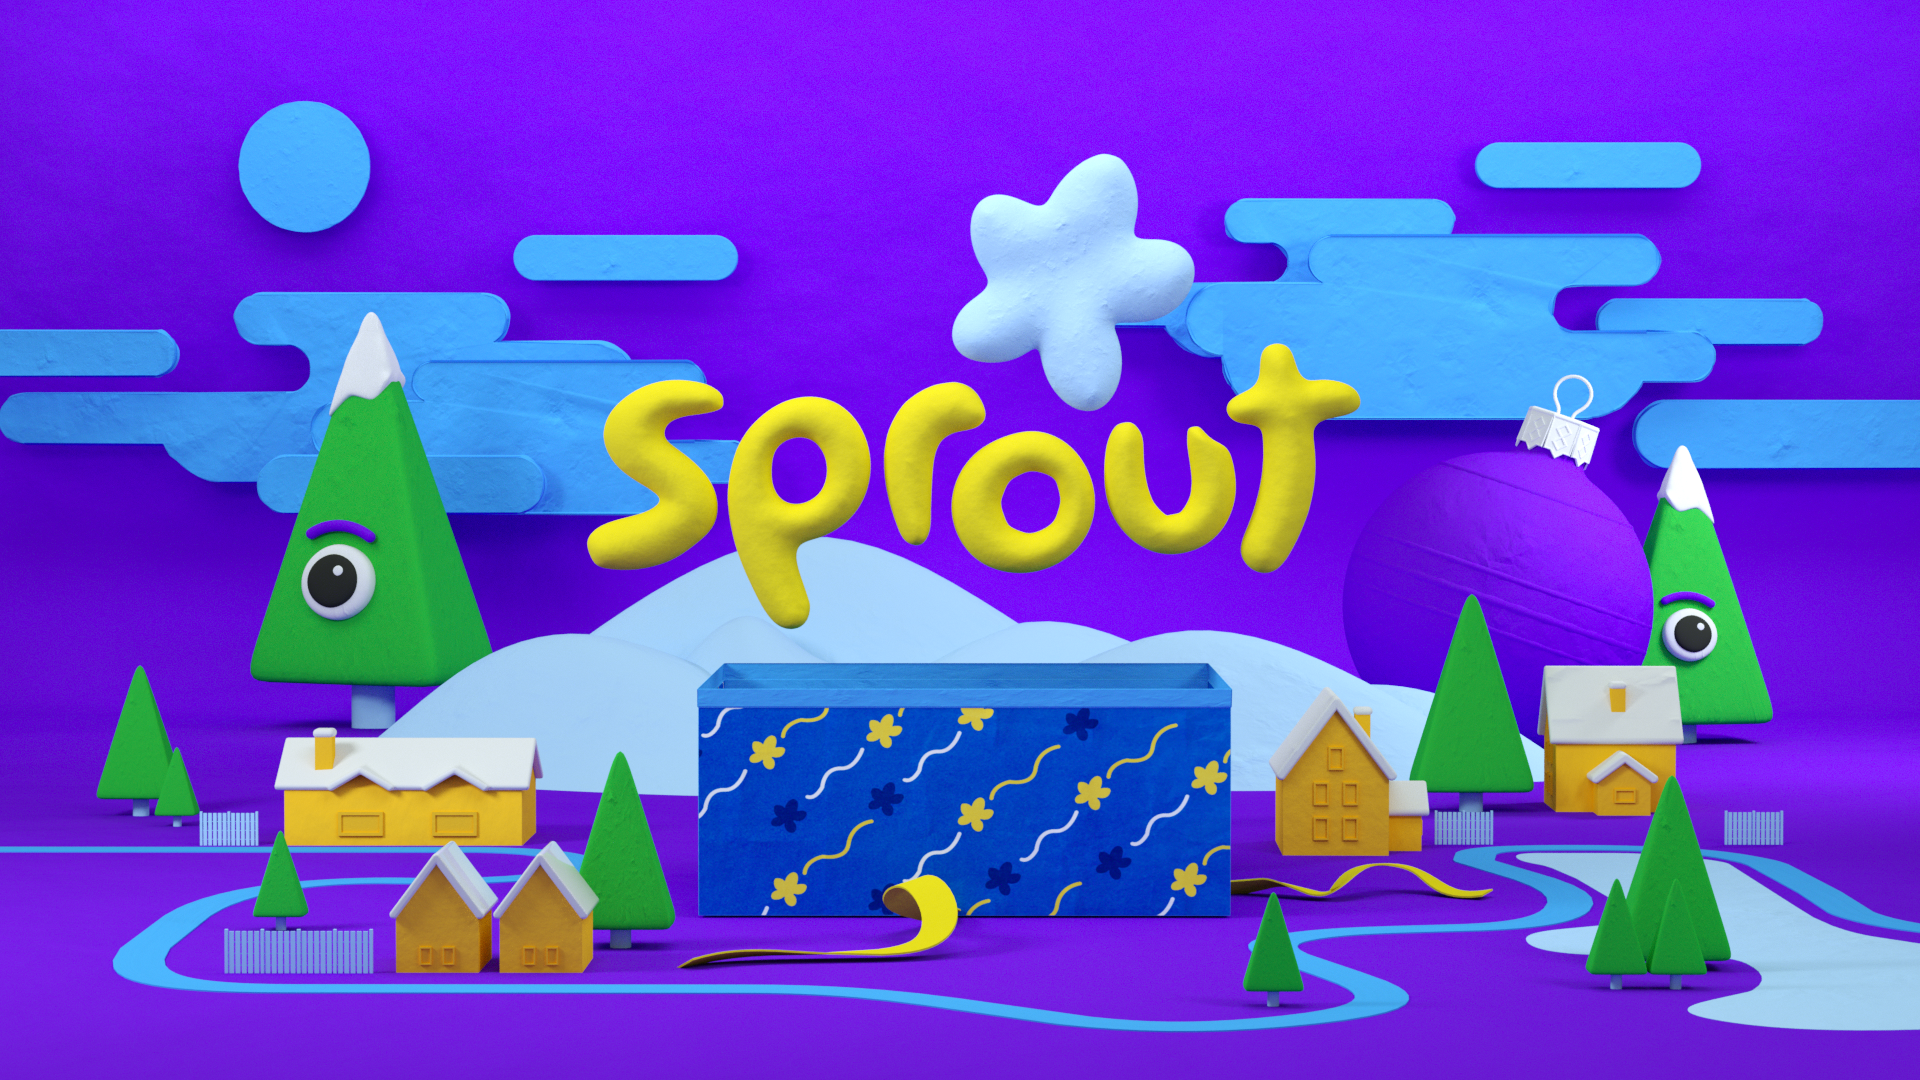 SPROUT_ROD_PURPLE_v03_0120.png